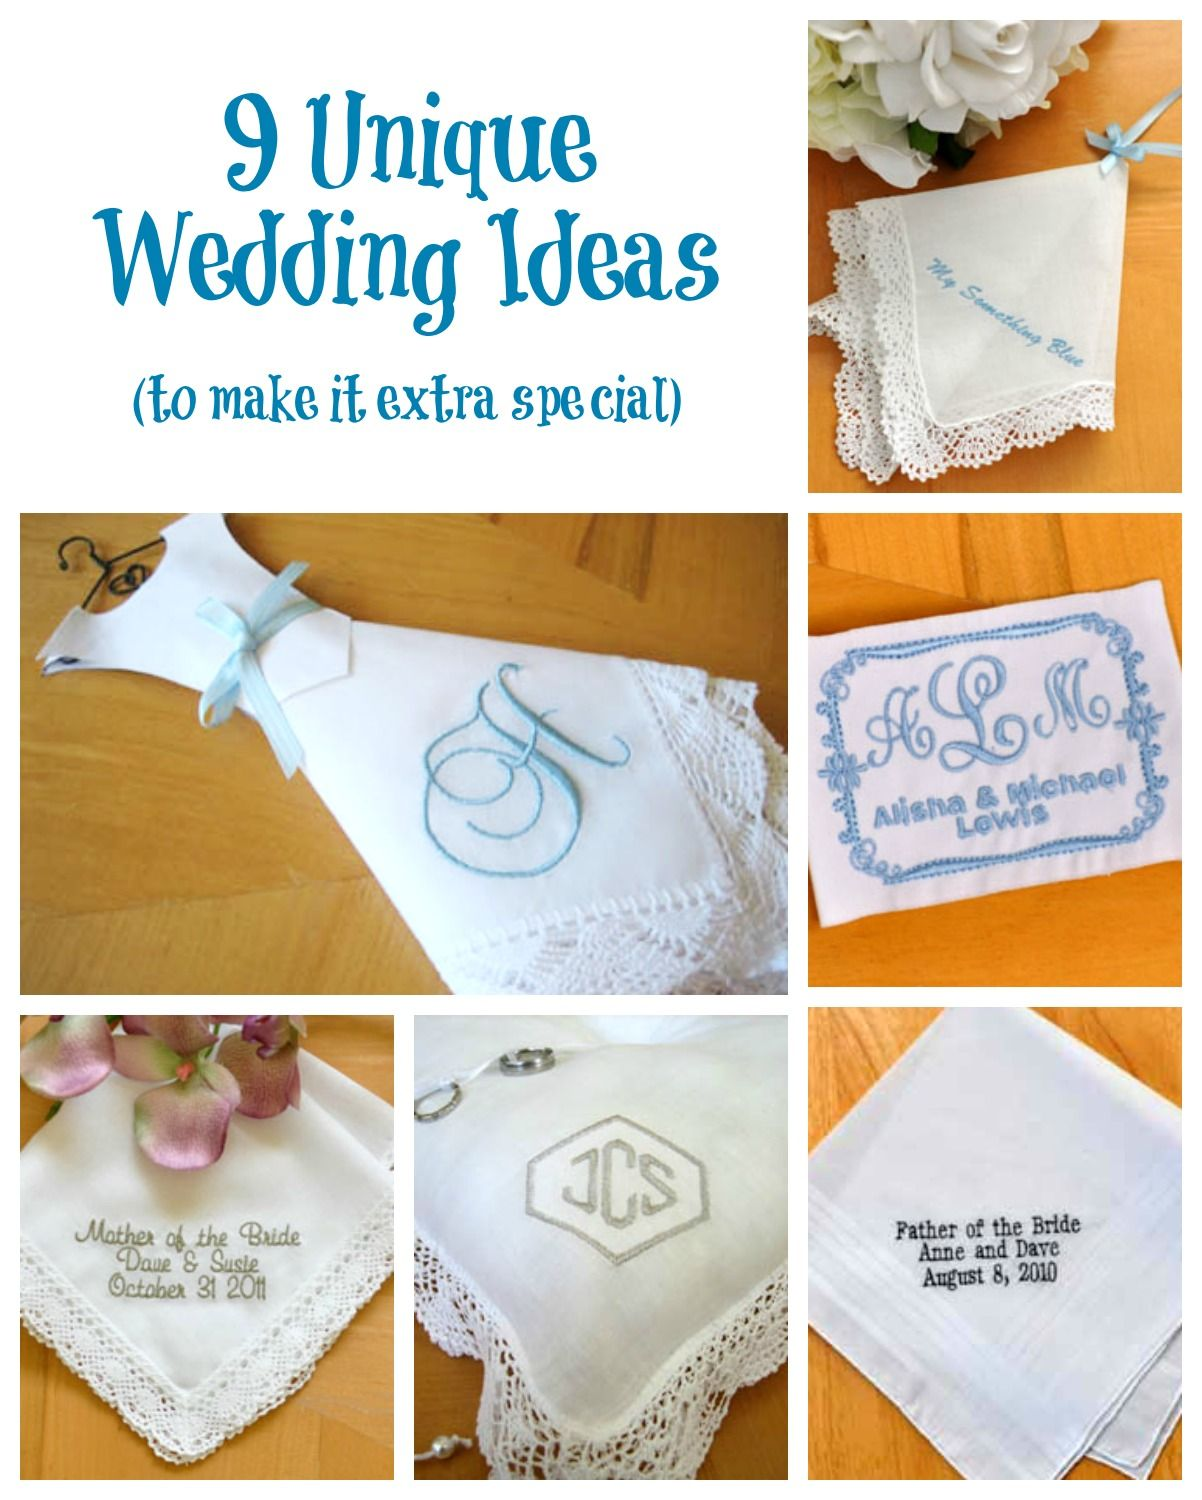 9 Unique Wedding Ideas To Make Your Wedding Extra Special